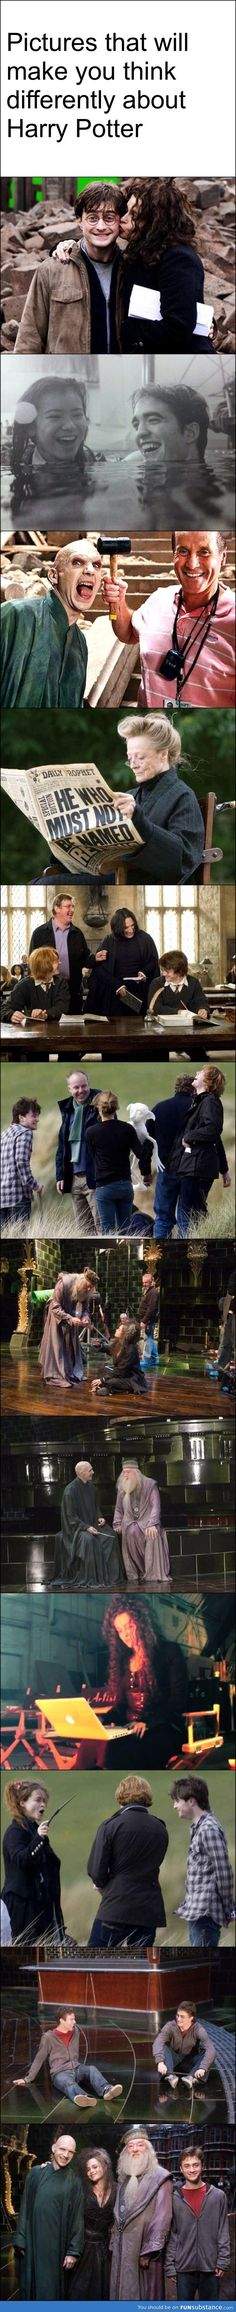 Harry Potter - pictures from the film set